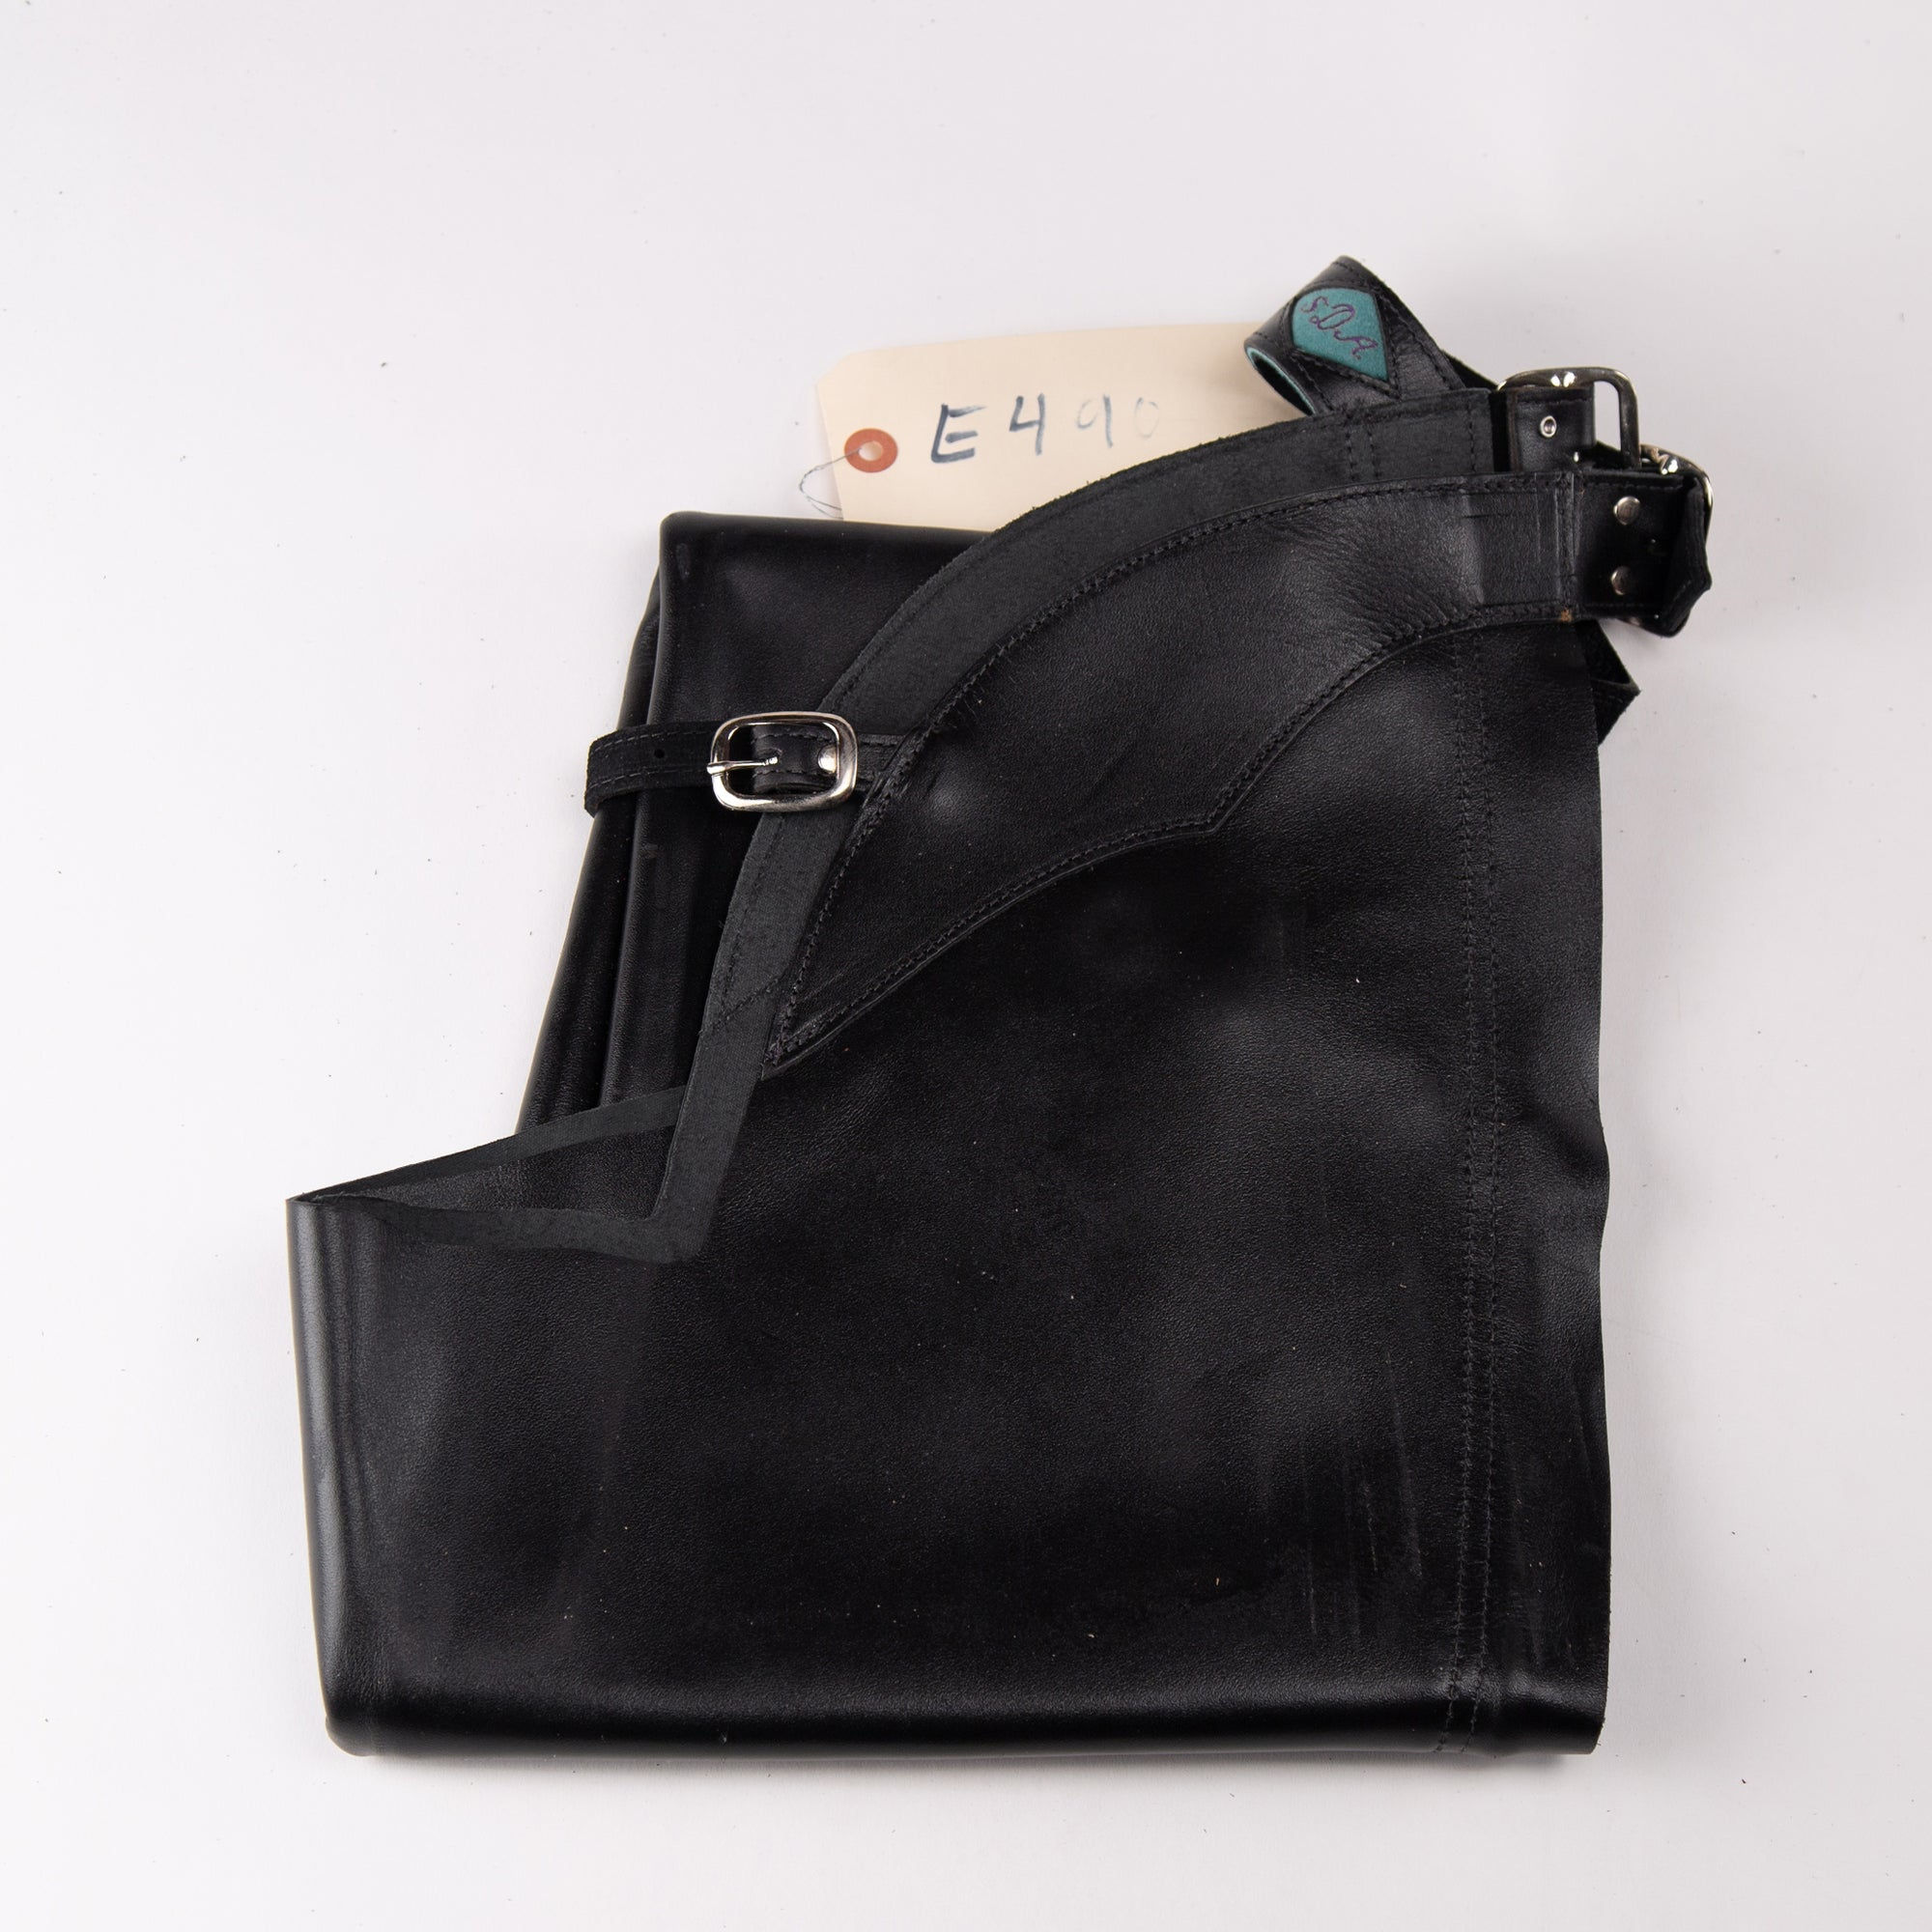 English Schooling Chaps - Black Top Grain Leather - (SDA) Monogram